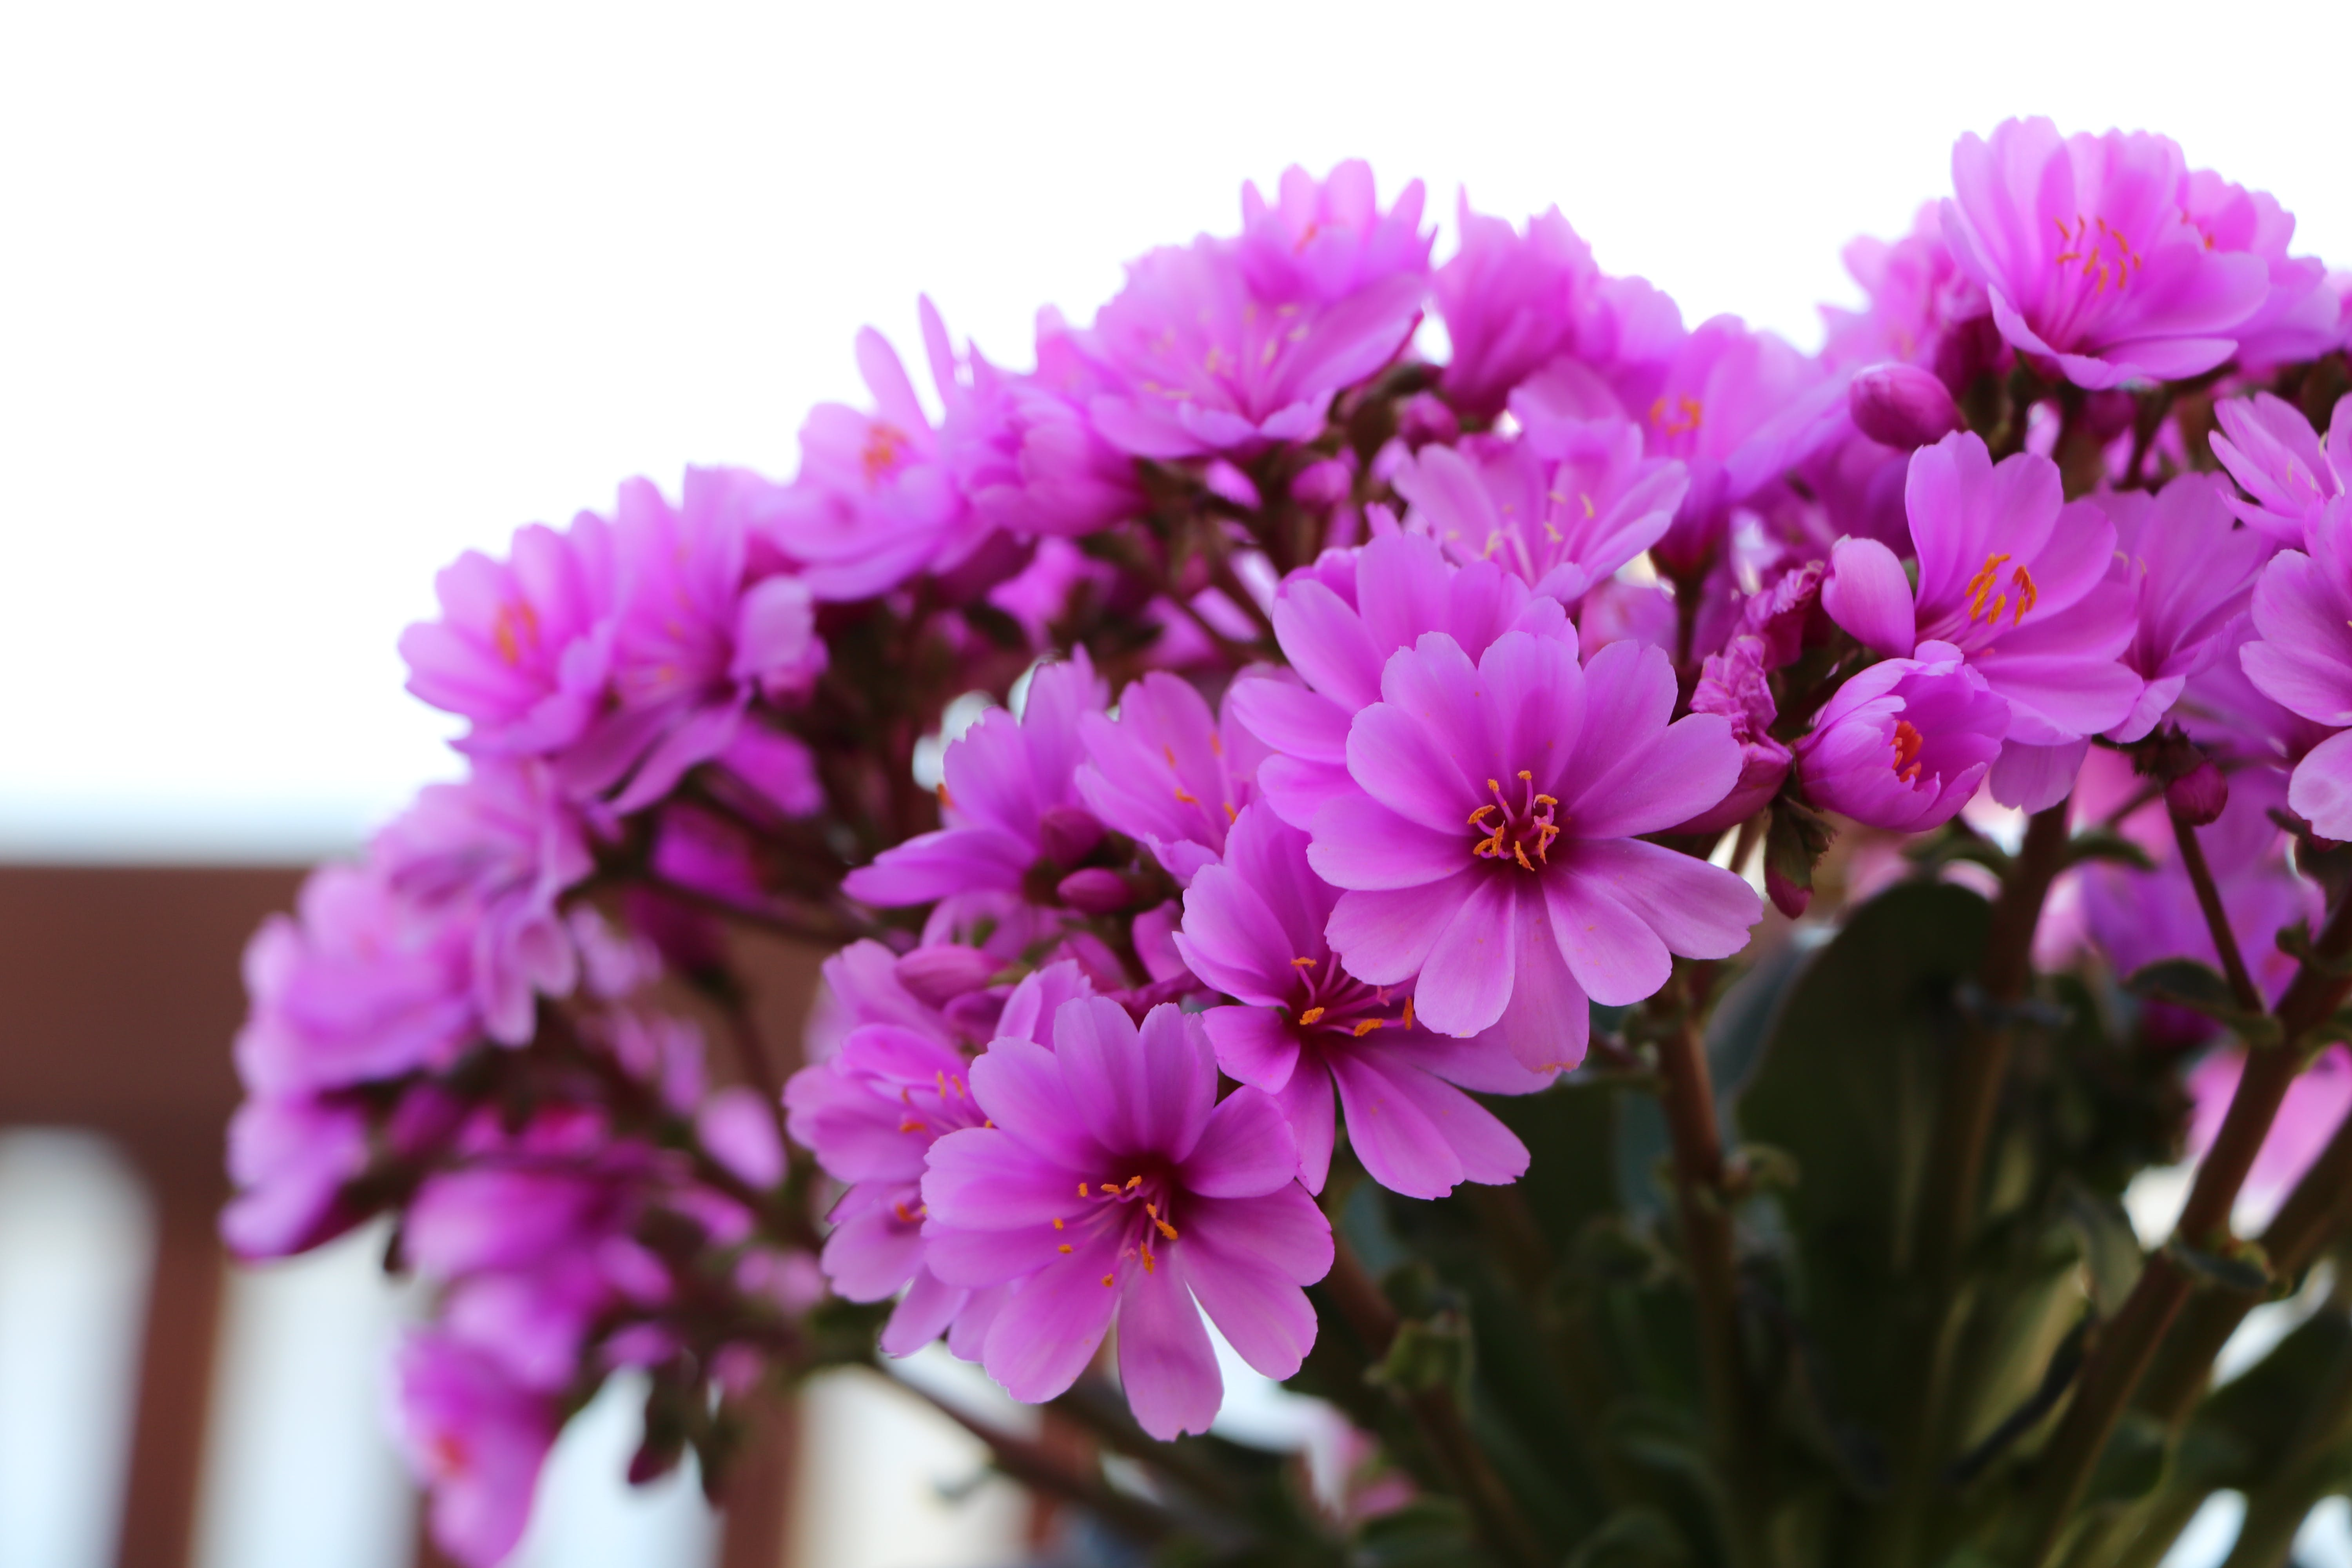 Close-Up Photo of Purple Flowers